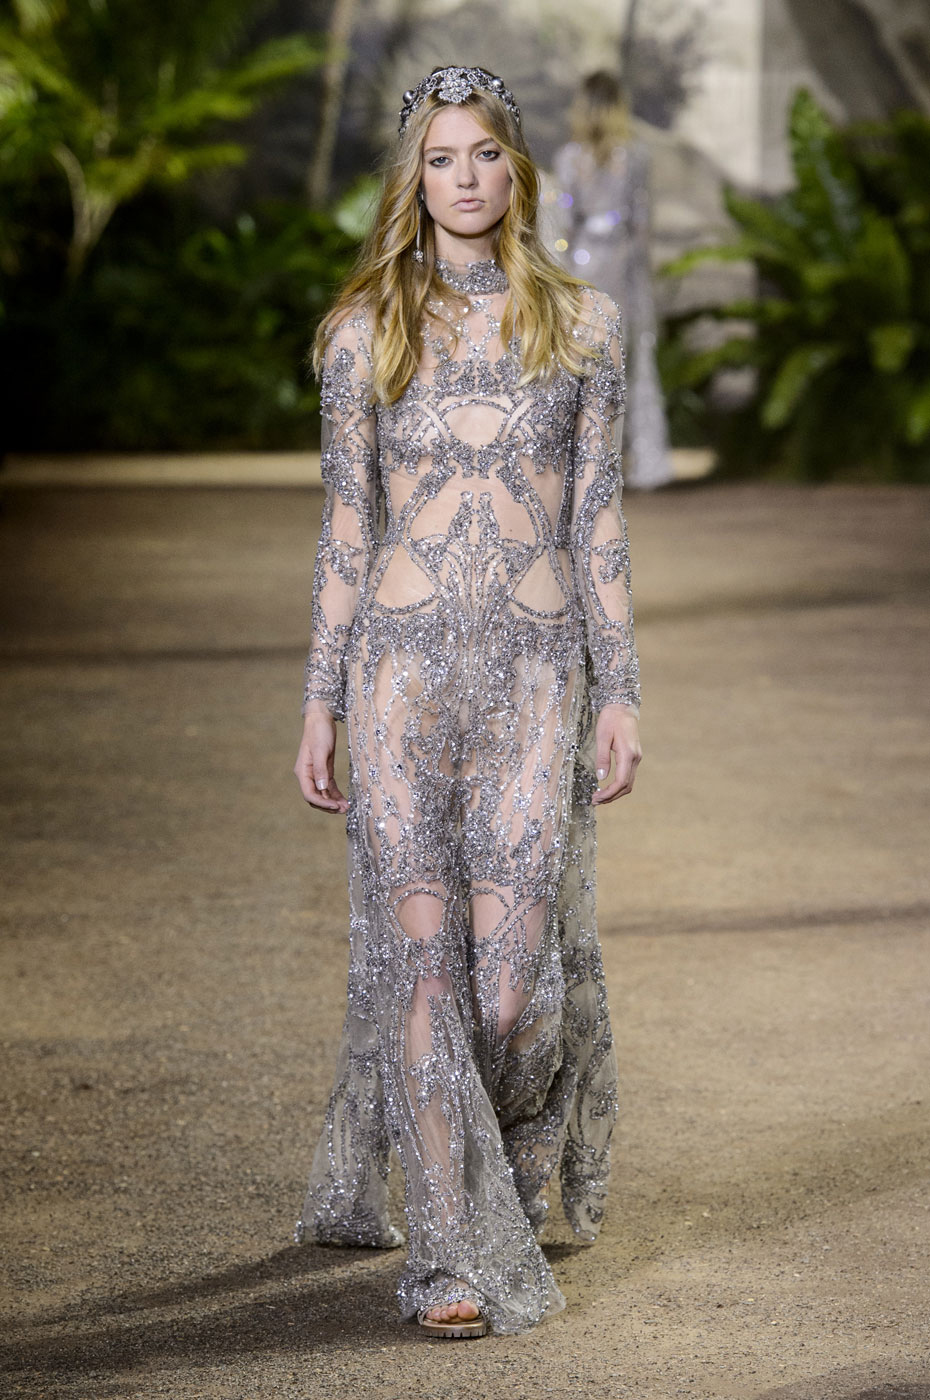 Elie Saab Looks to India for Spring 2016 Couture